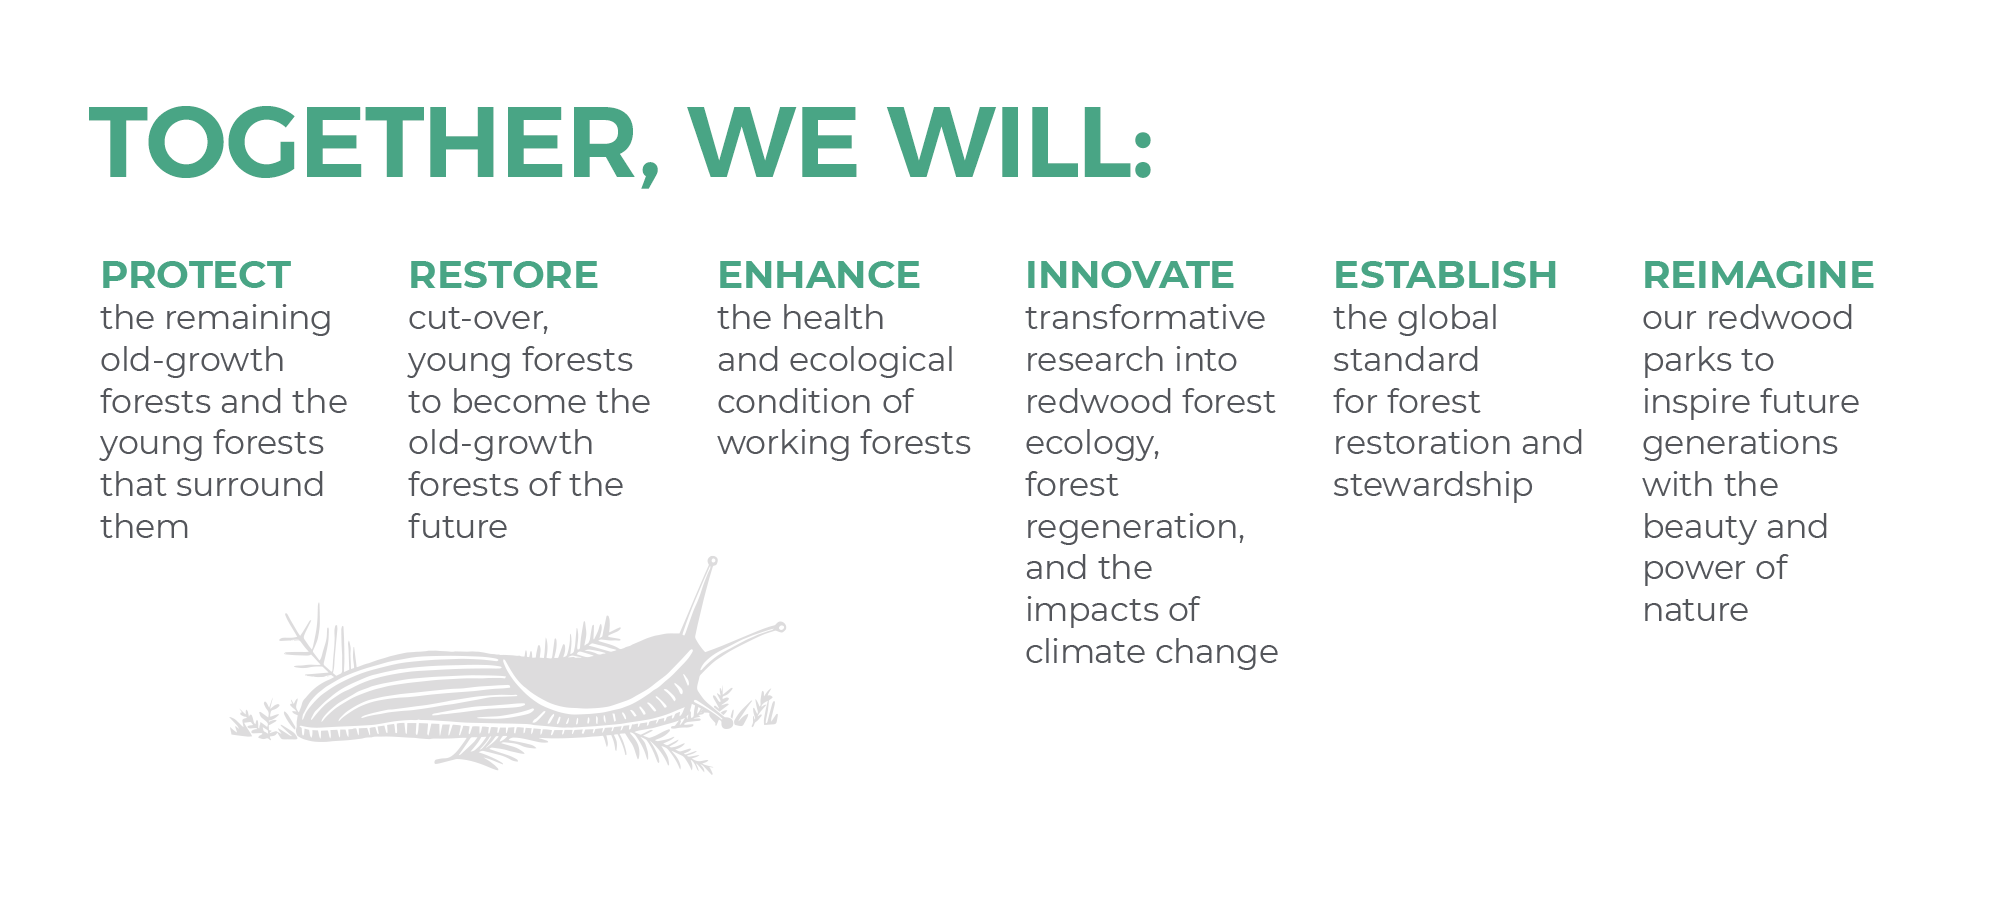 Forever Forest Campaign Goals